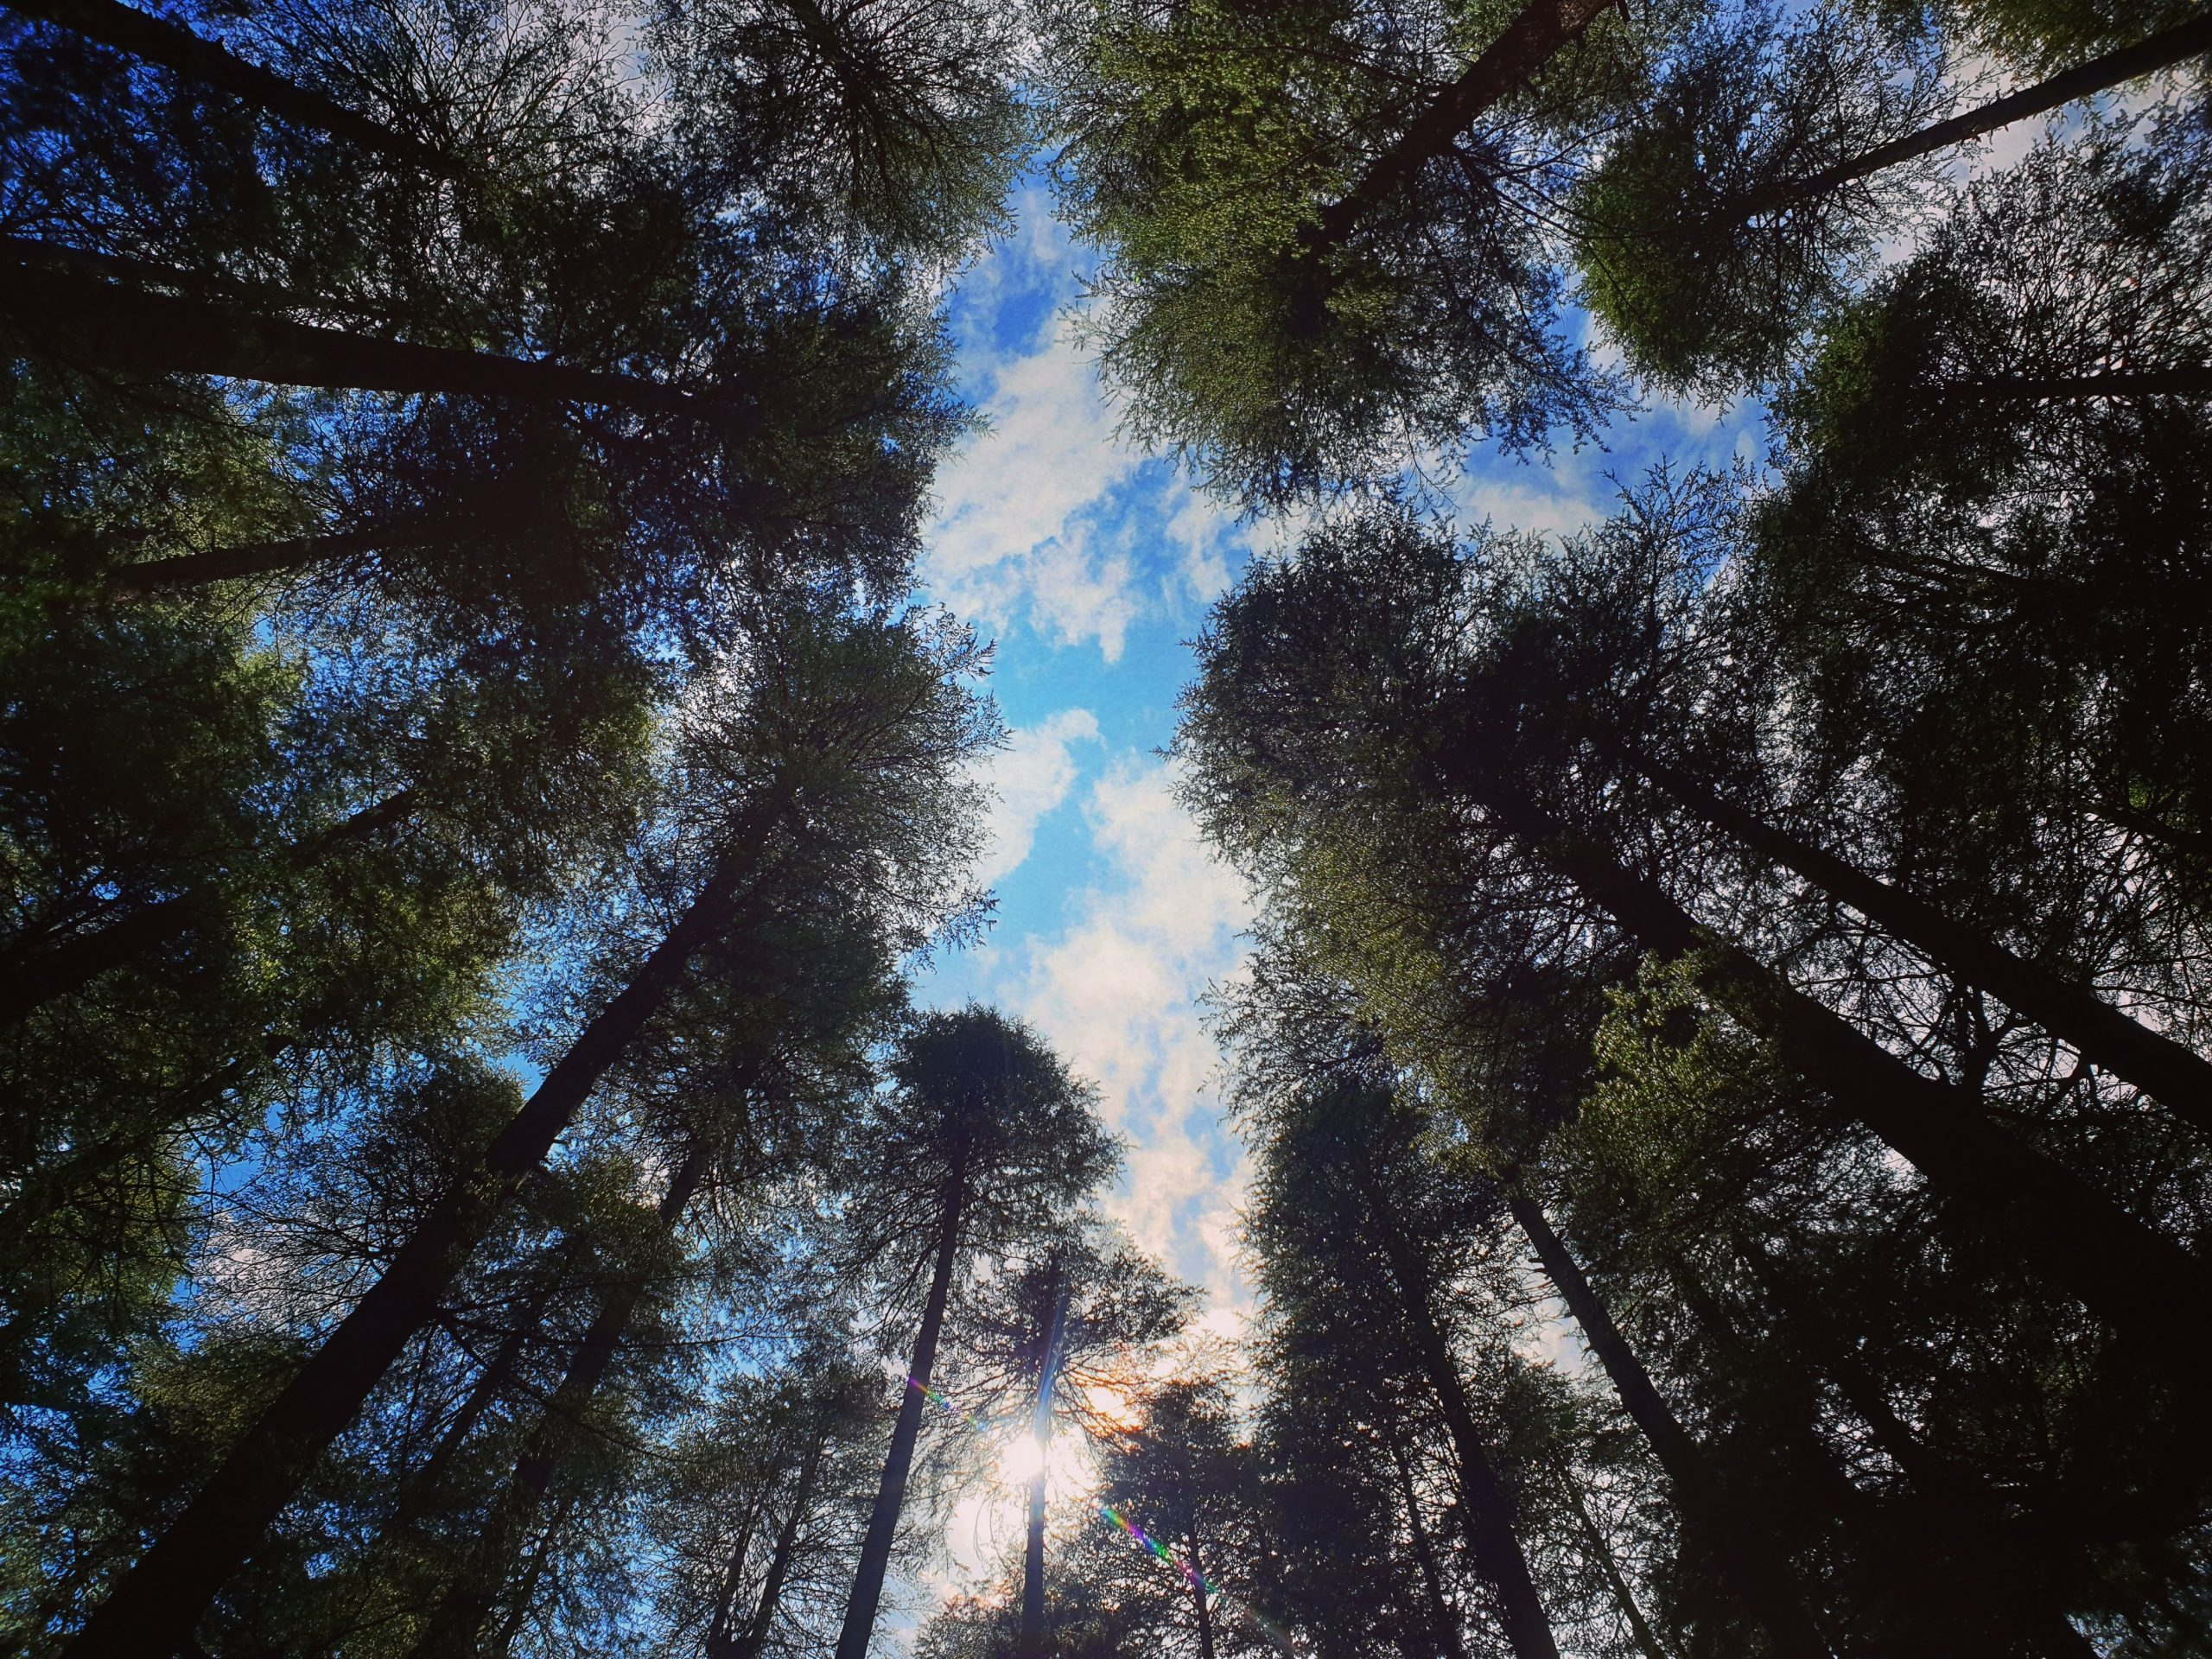 A picture showing tall trees and the sky